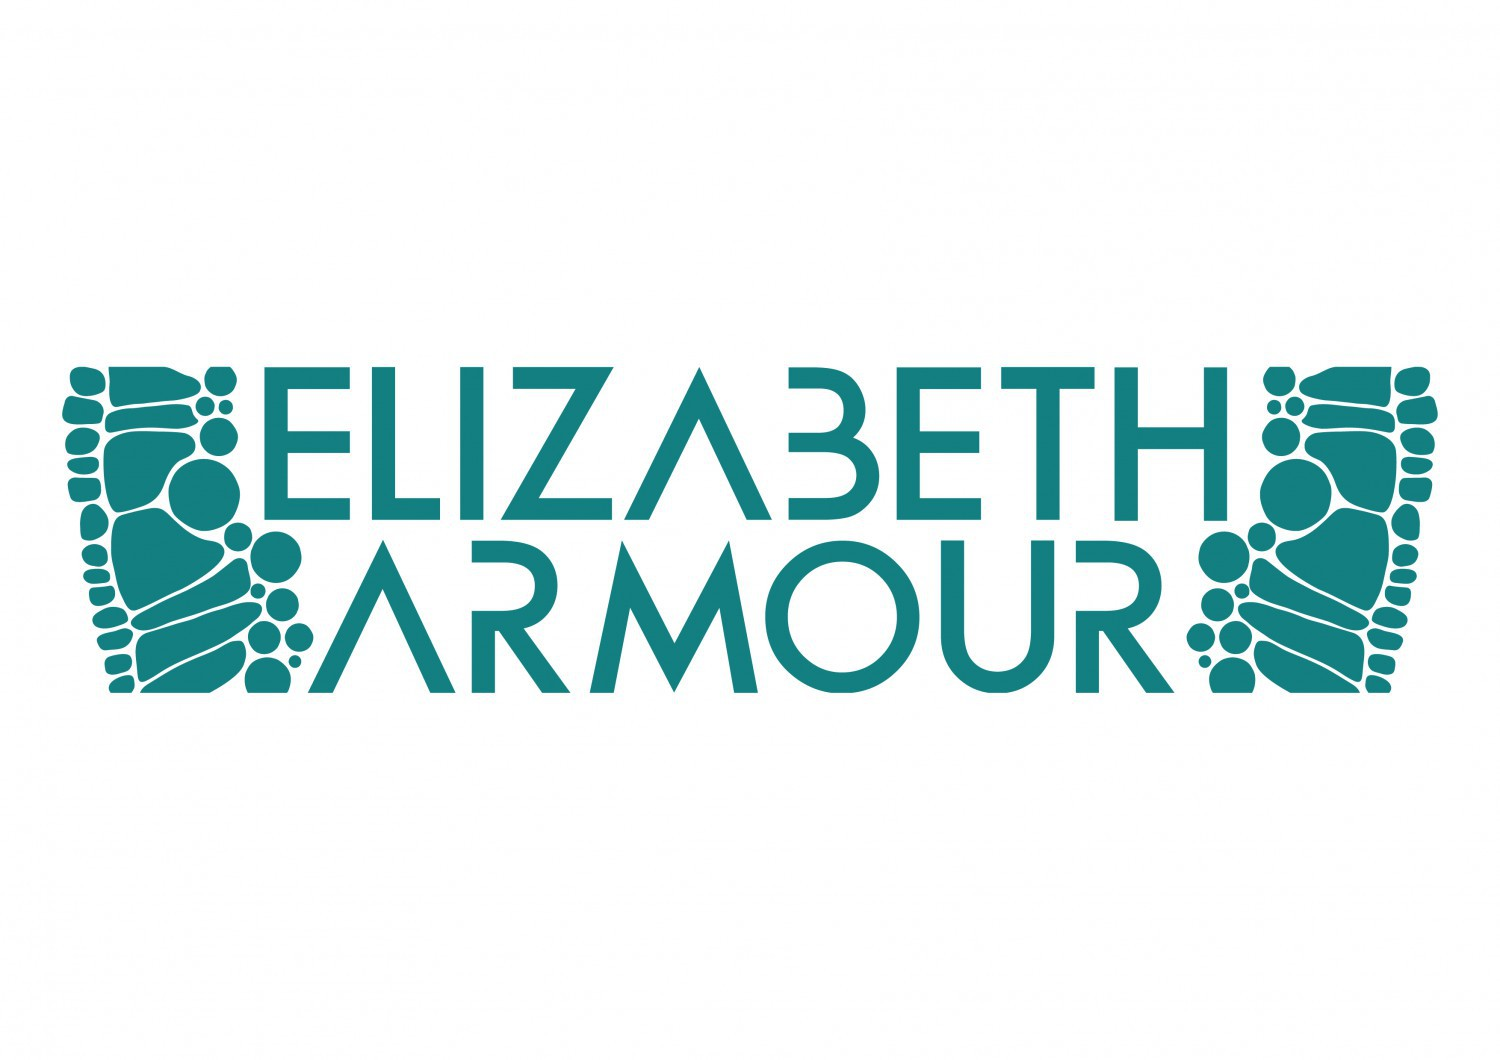 cropped-cropped-elizabetharmour_logo_teal_hires.jpg